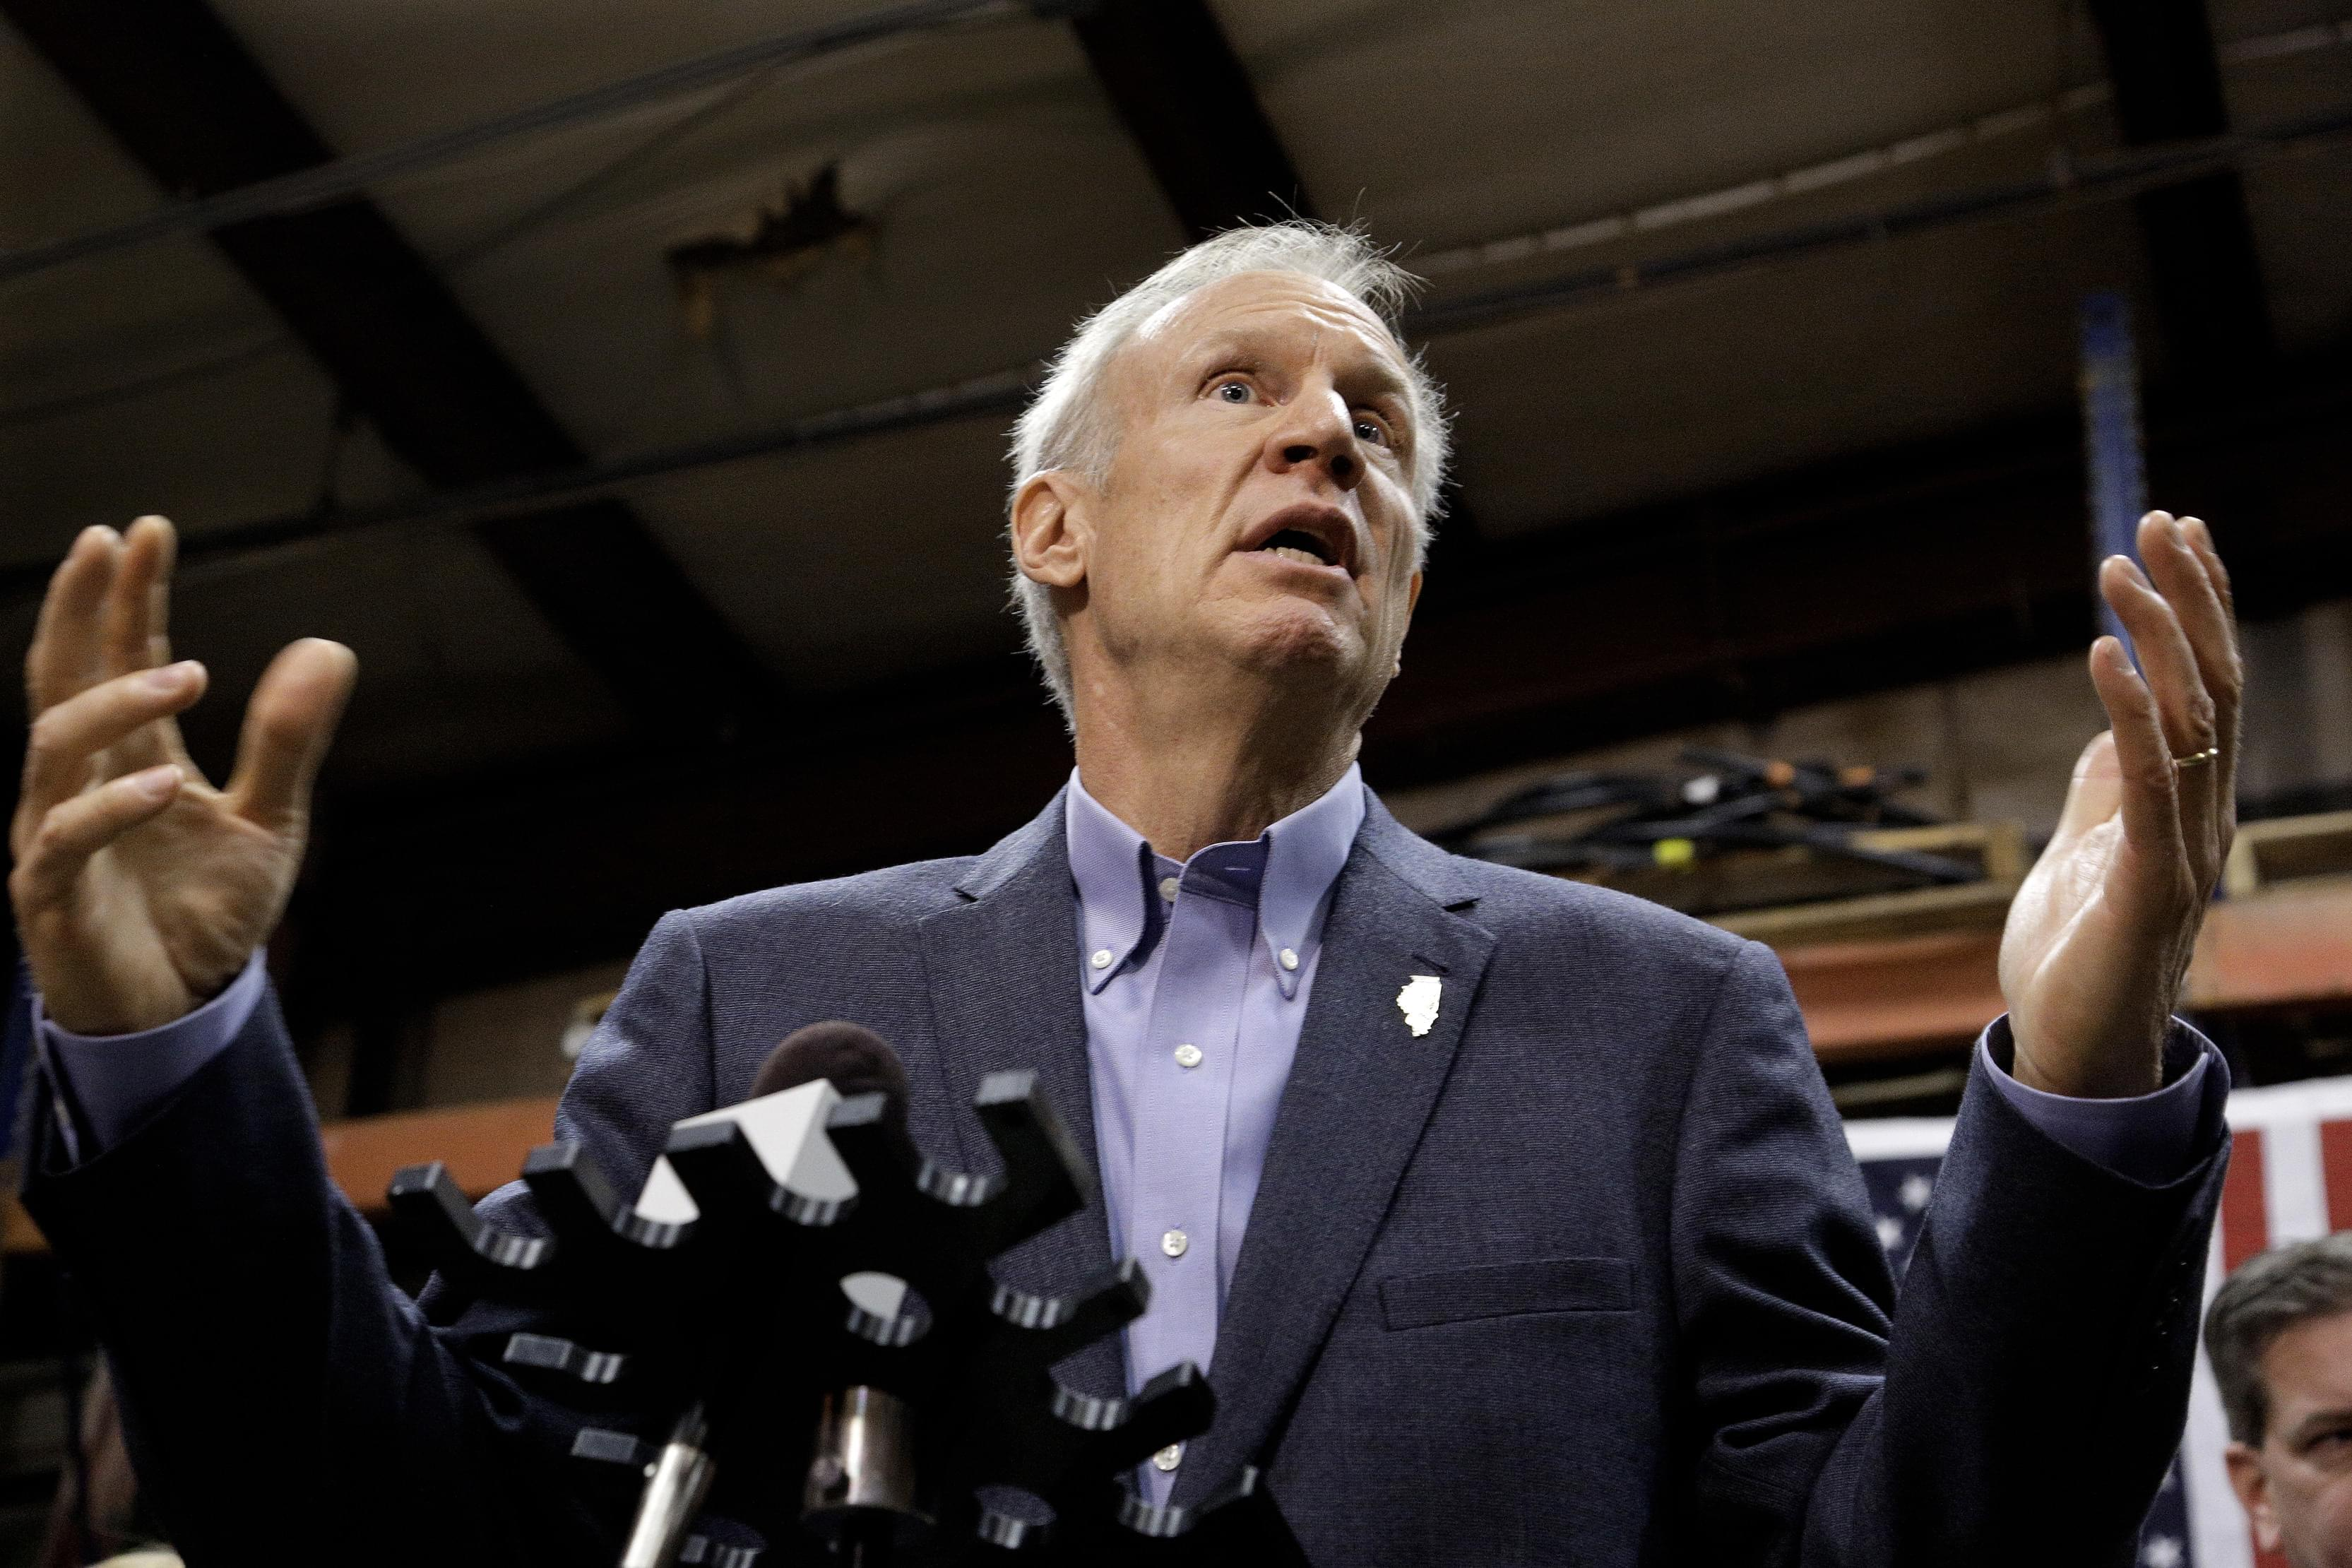 In this Wednesday, Nov. 16, 2016 photo, Illinois Gov. Bruce Rauner speaks to reporters after meeting with legislative leaders during veto session in Springfield, Ill.